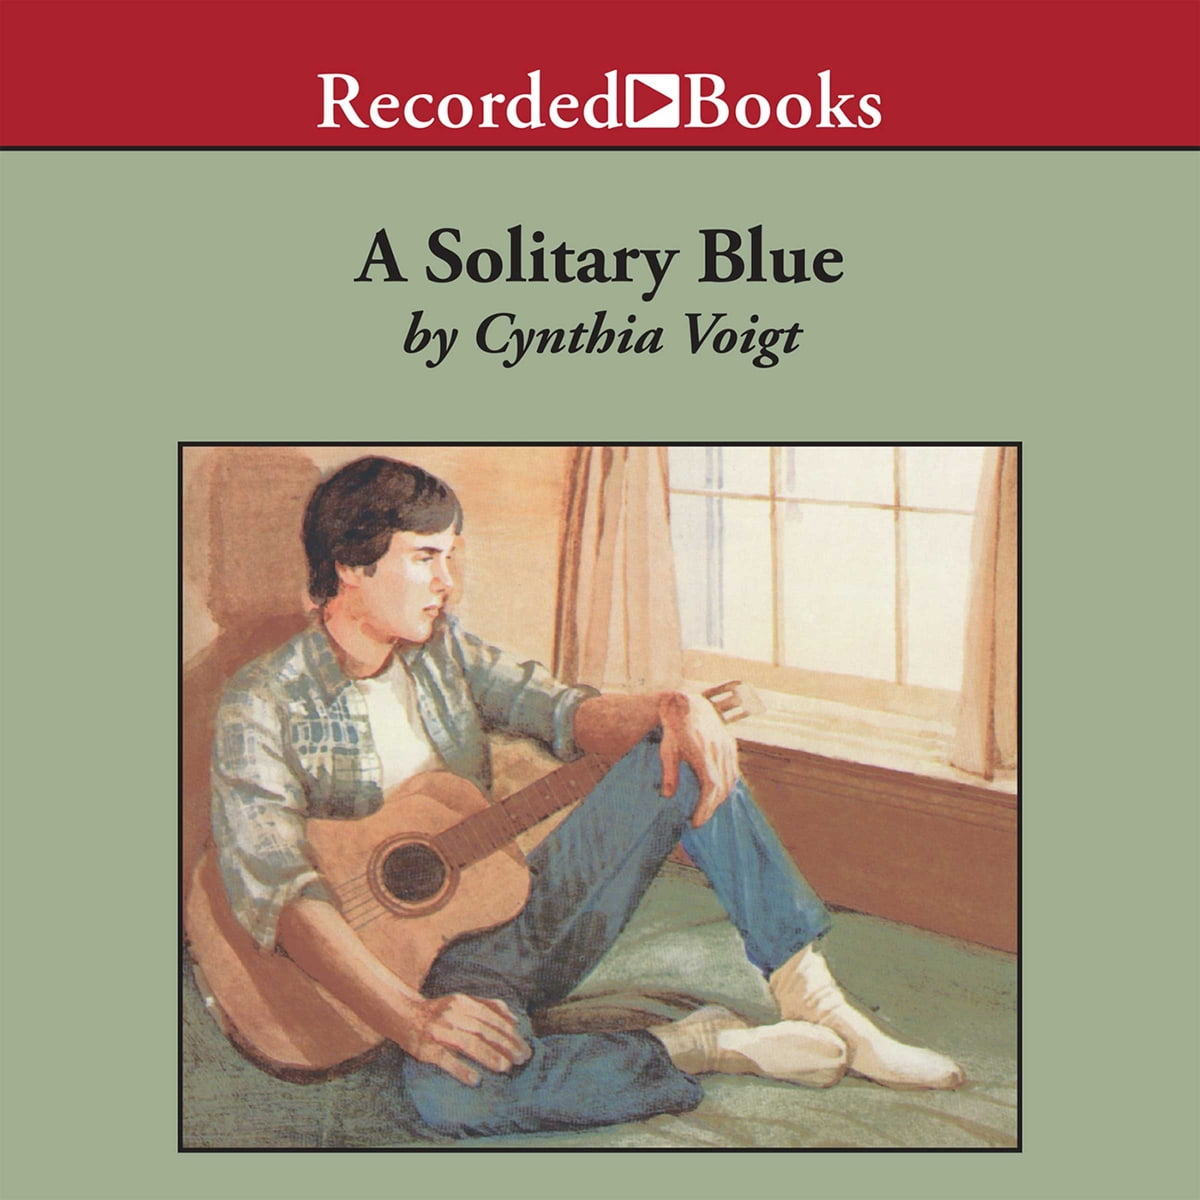 A Solitary Blue Audiobook by Cynthia Voigt - 9781436189019 | Rakuten Kobo